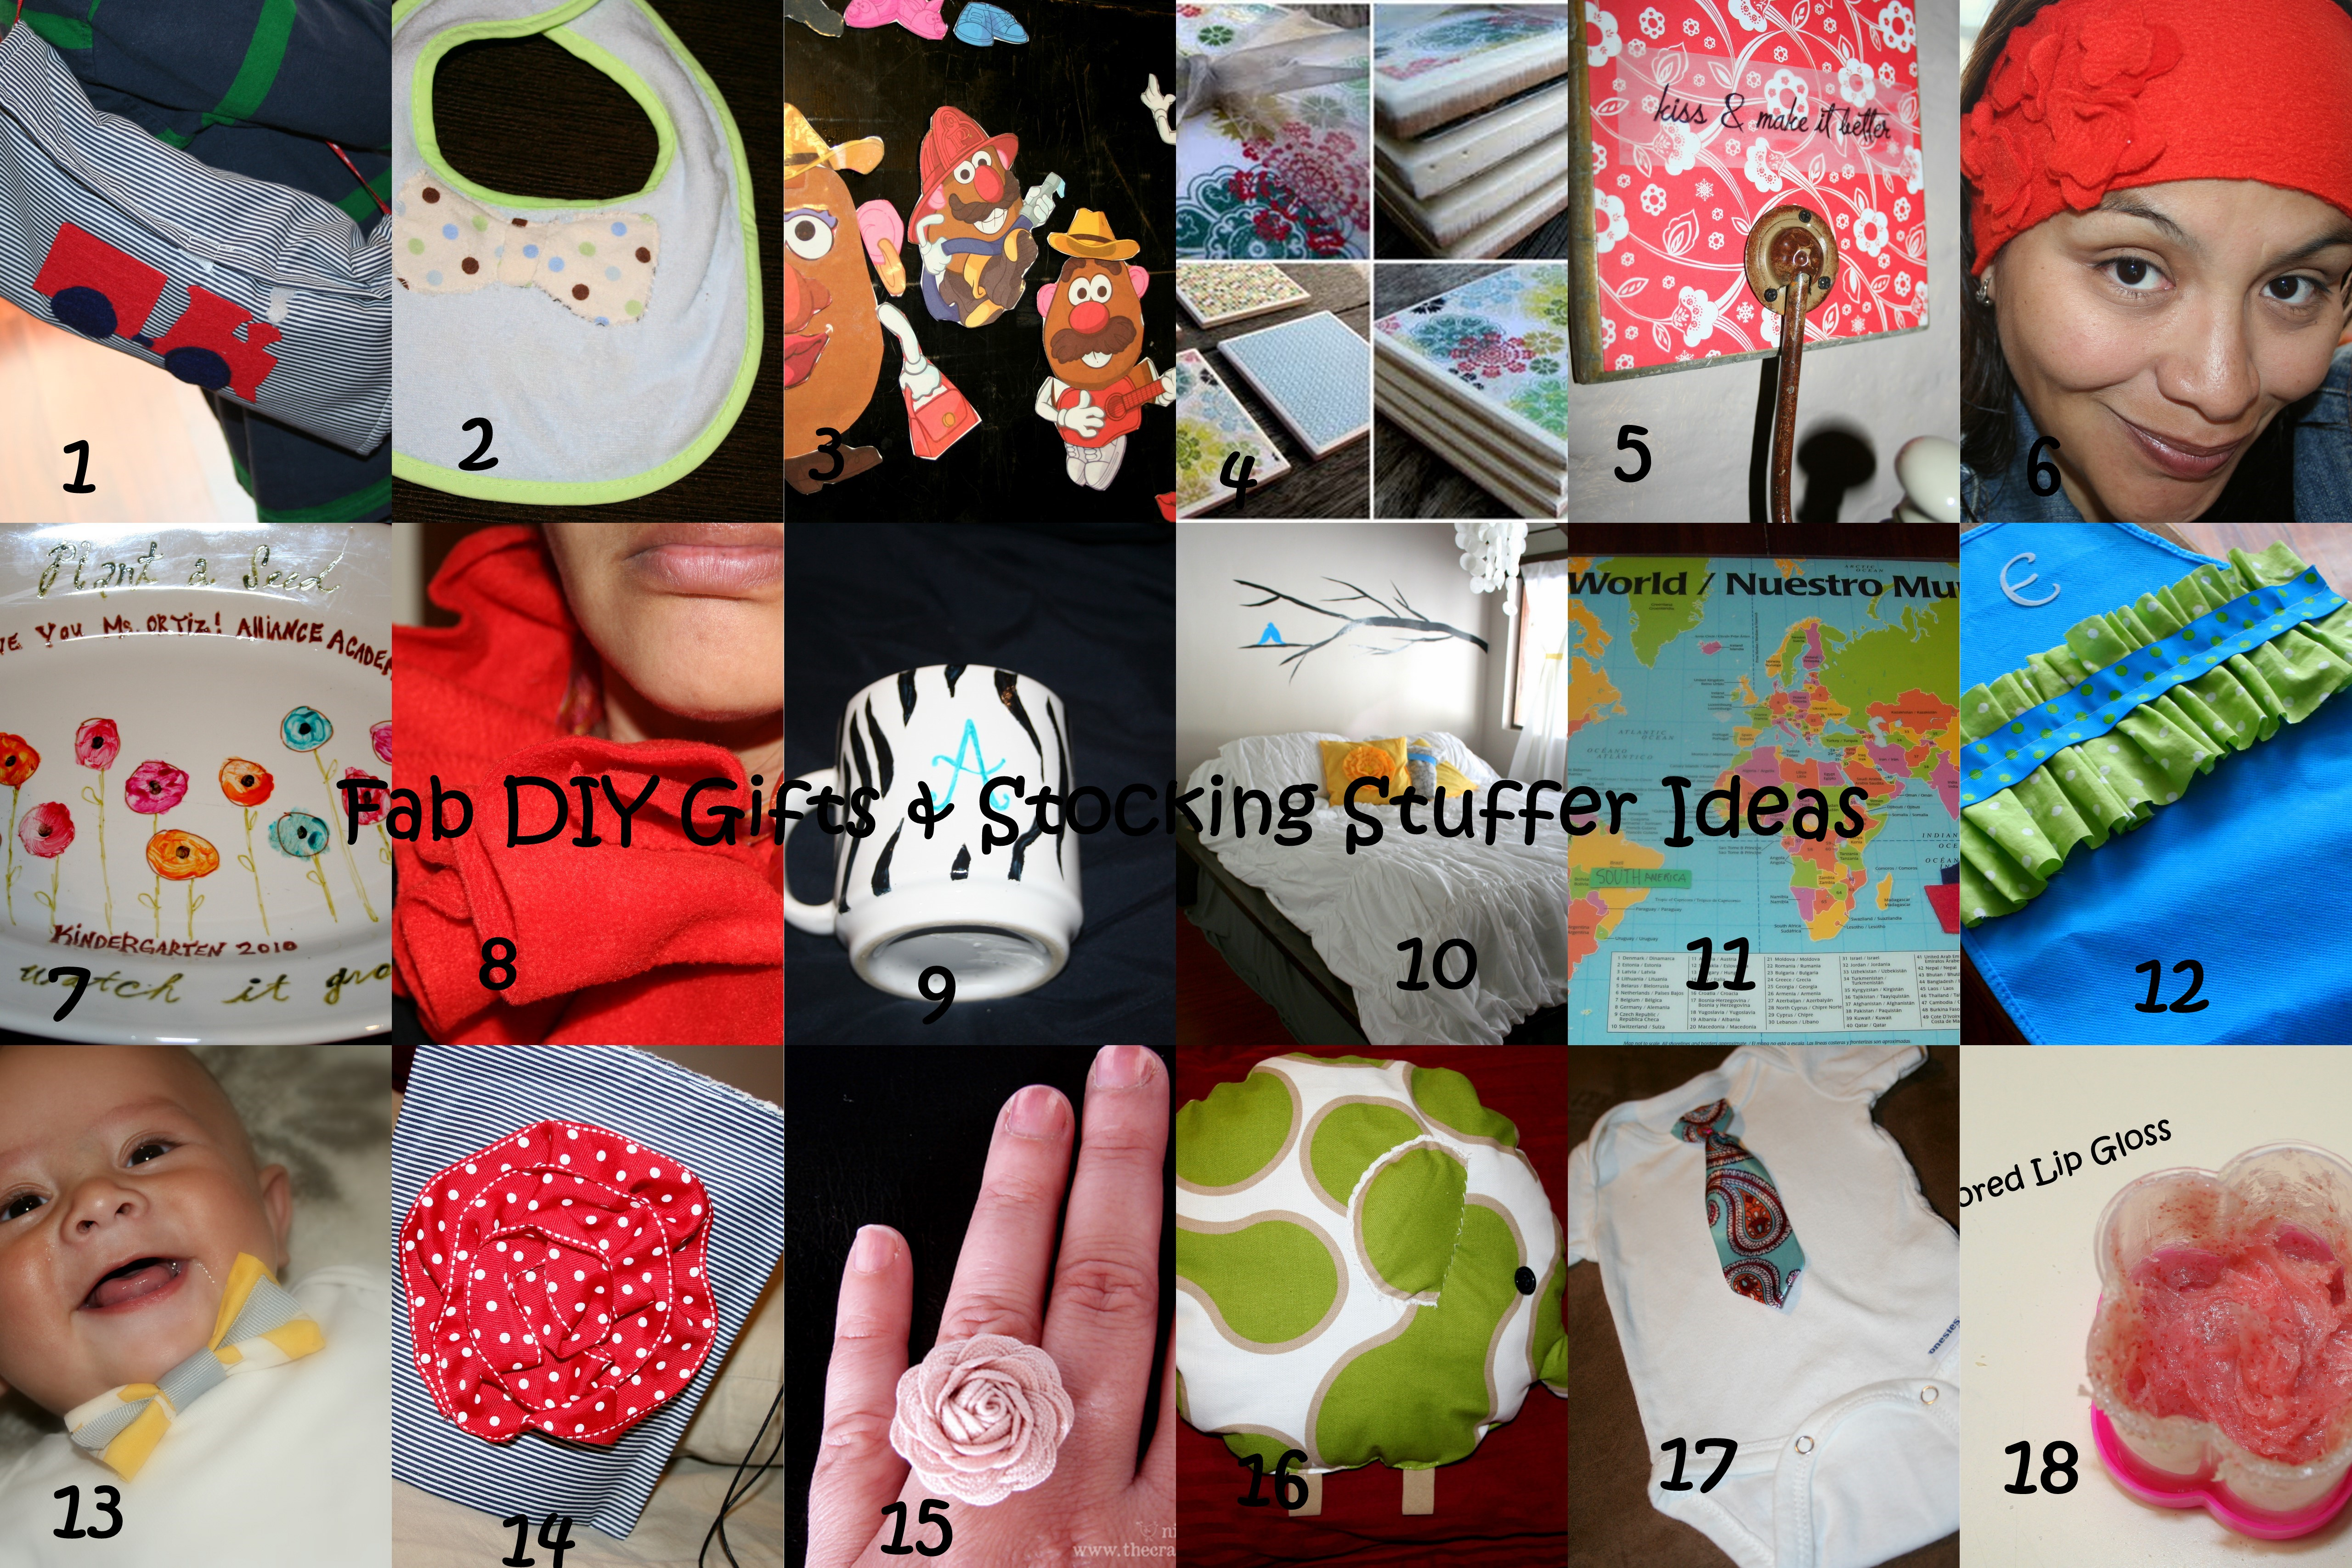 Fab Diy Gifts And Stocking Stuffer Ideas For Under 10